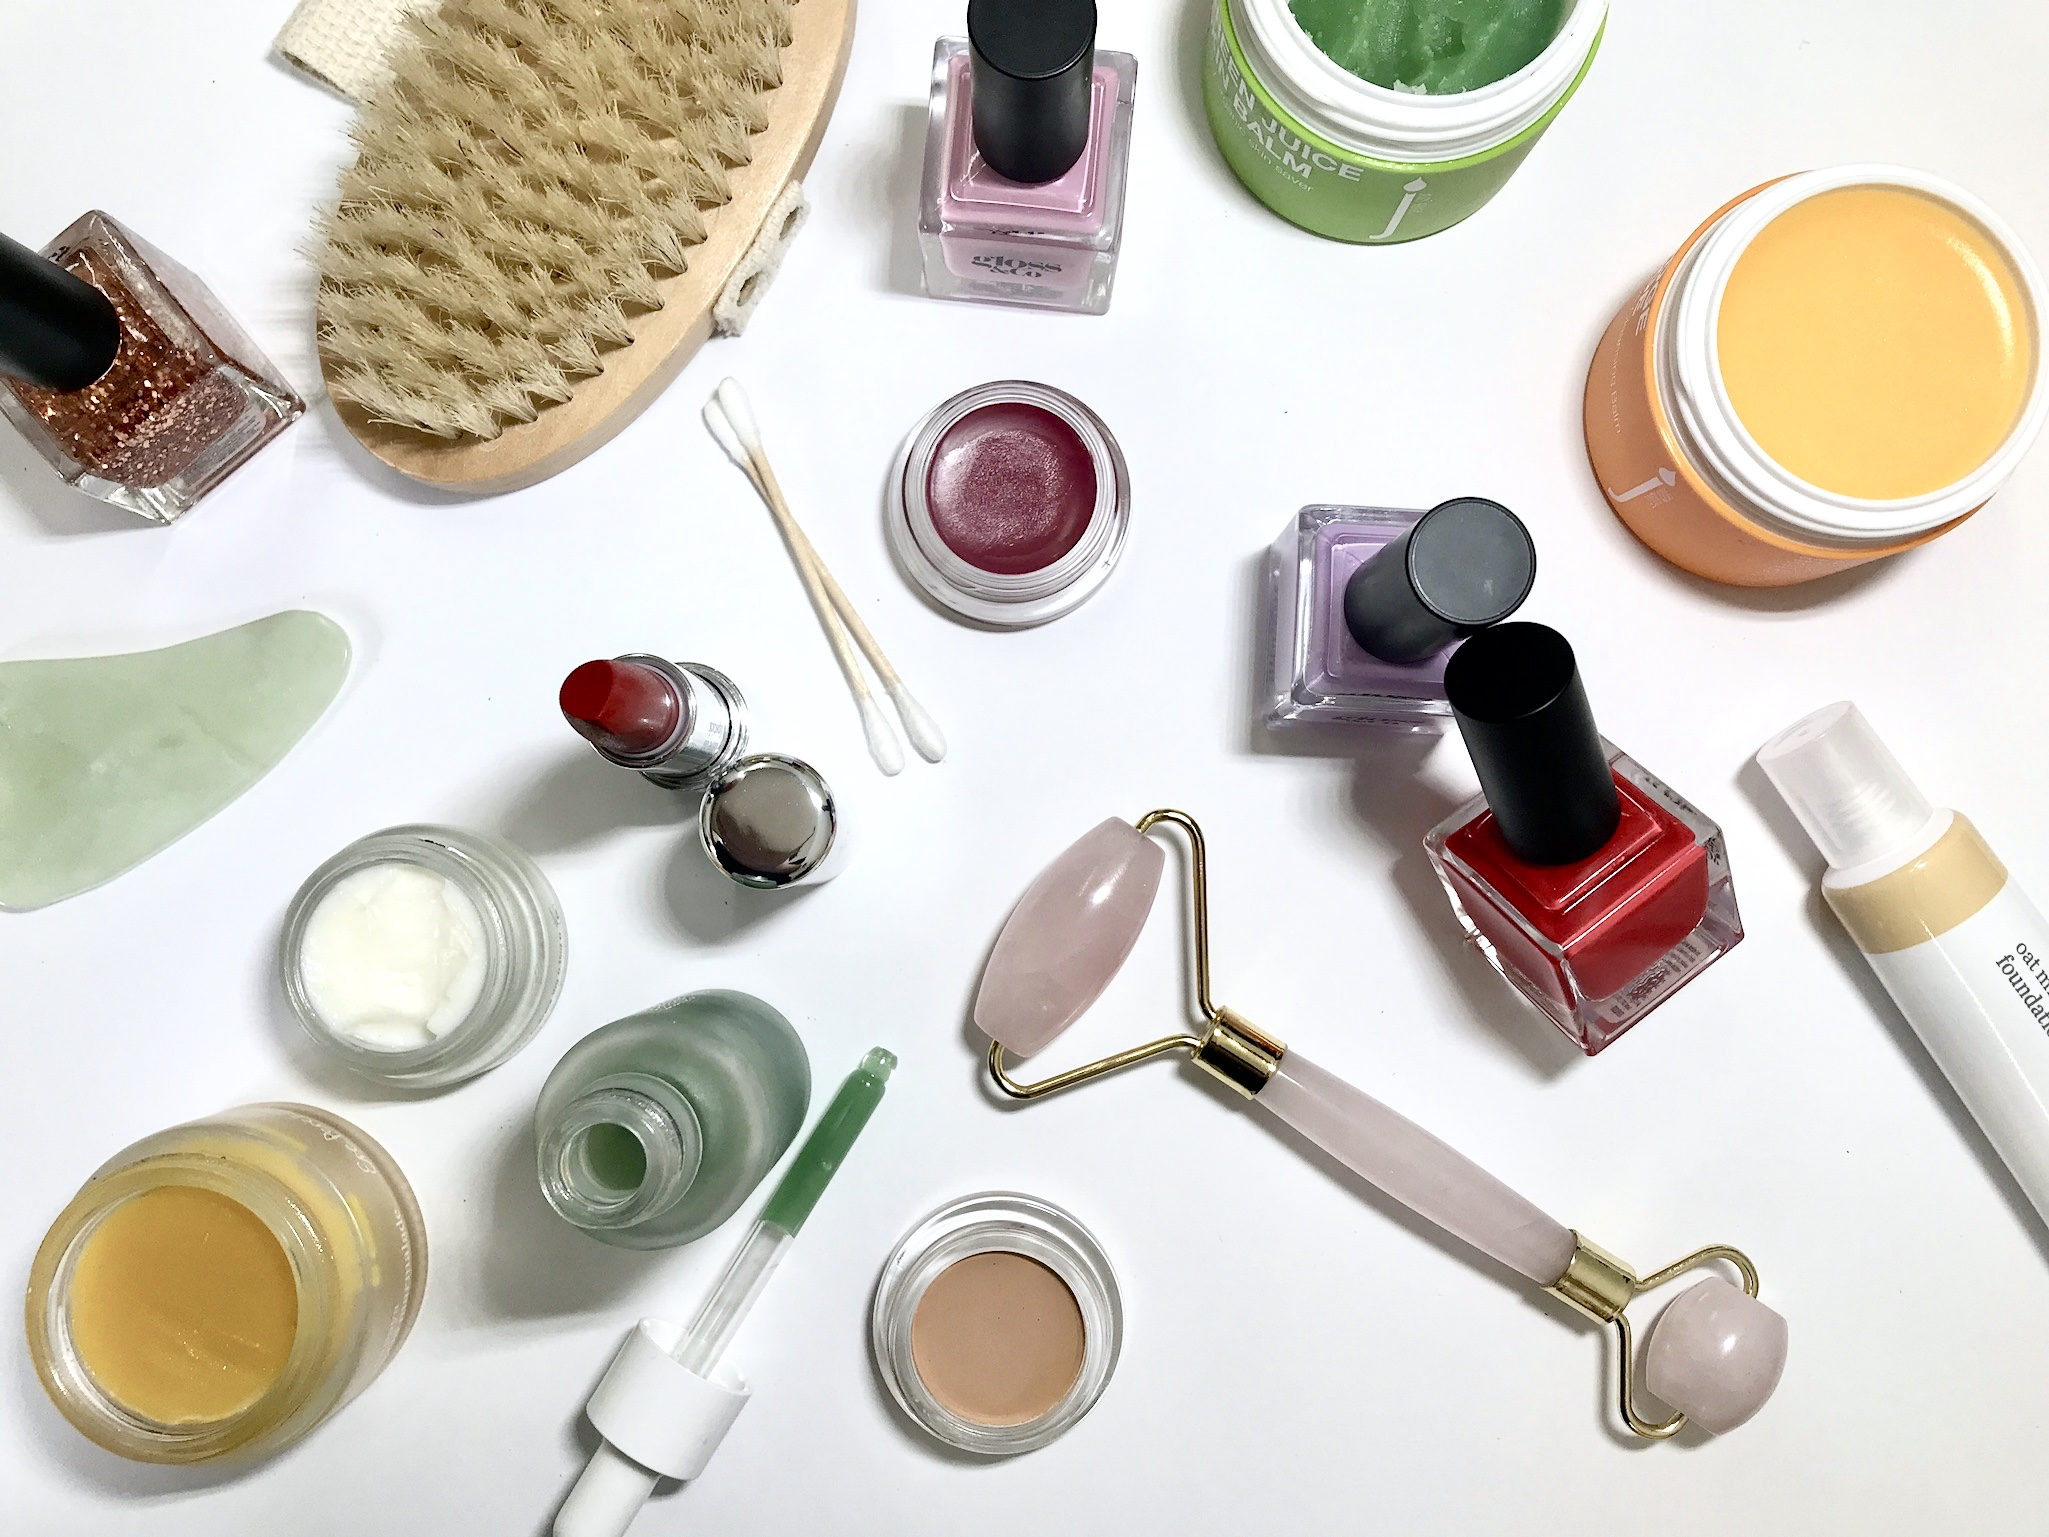 Shop Online. - We are obsessed with clean beauty and wellness products. Products with the cleanest ingredients, that really work, that you will fall in love with. We want your self care routine to be a guilt free pleasure. Our consciously selected products will make this even easier.SHOP ONLINE